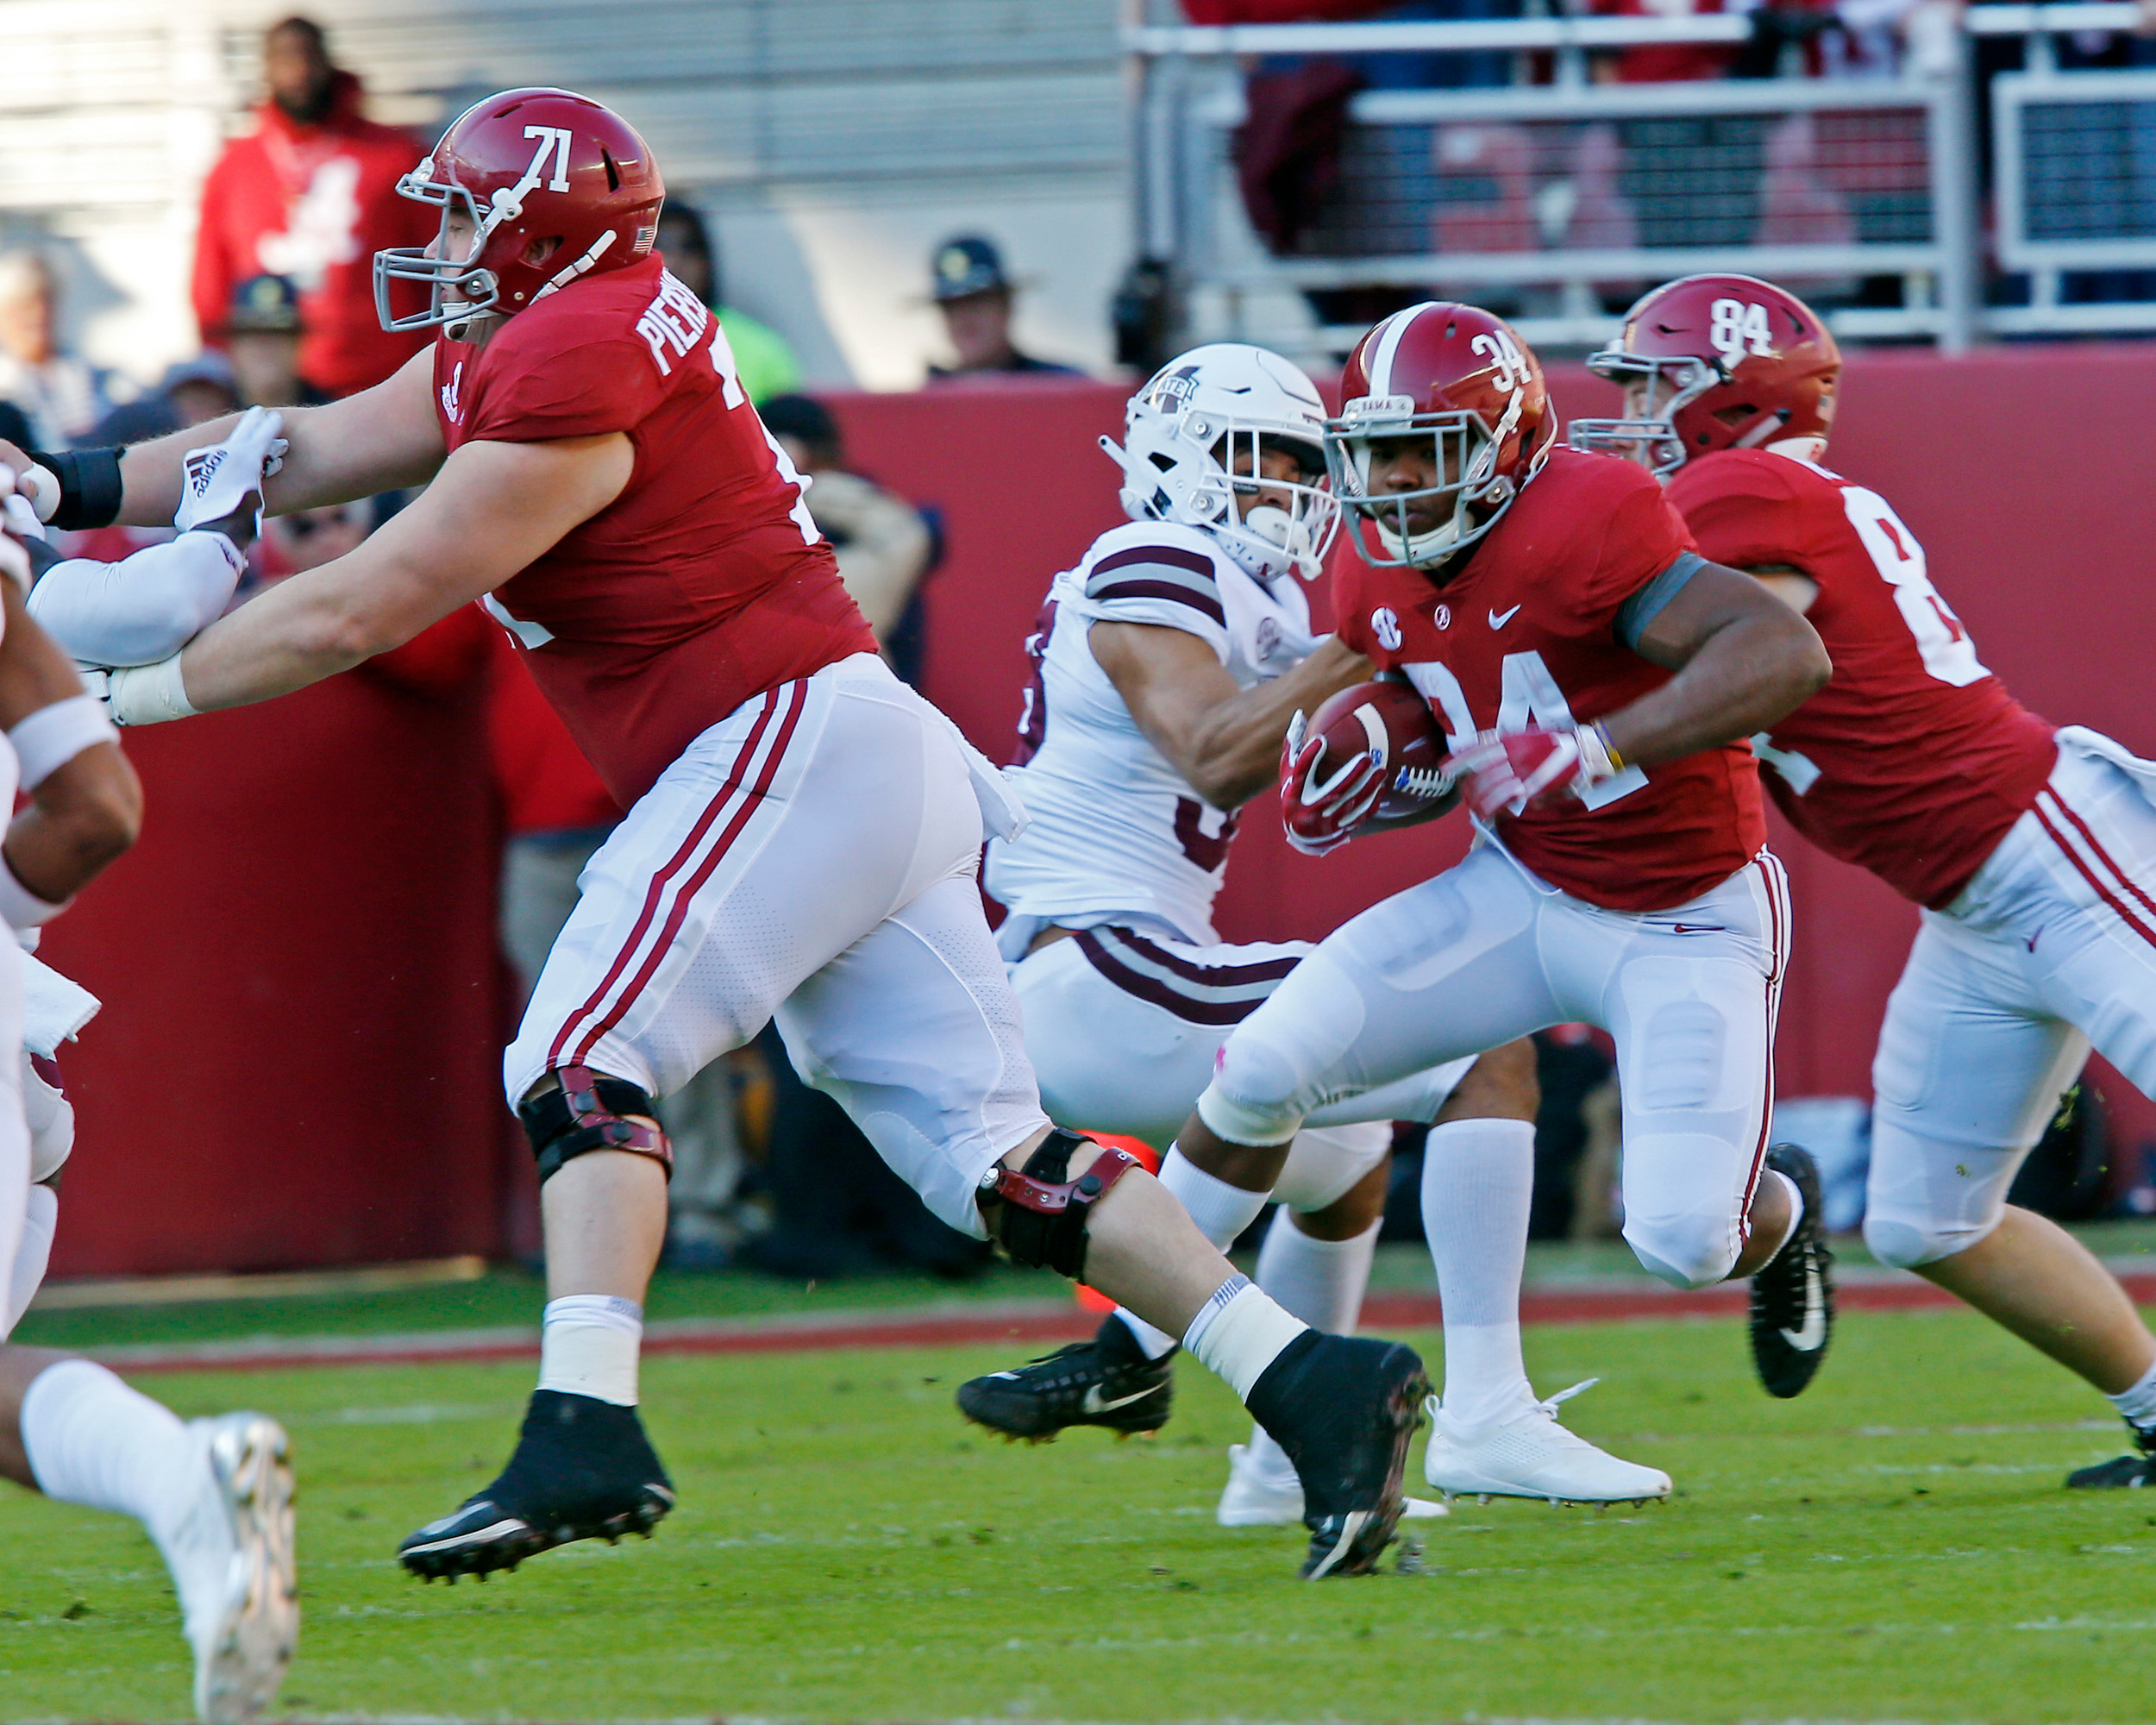 Alabama Crimson Tide running back Damien Harris (34) rushes during the first quarter against Mississippi State. Credit: Jason Clark / Daily Mountain Eagle